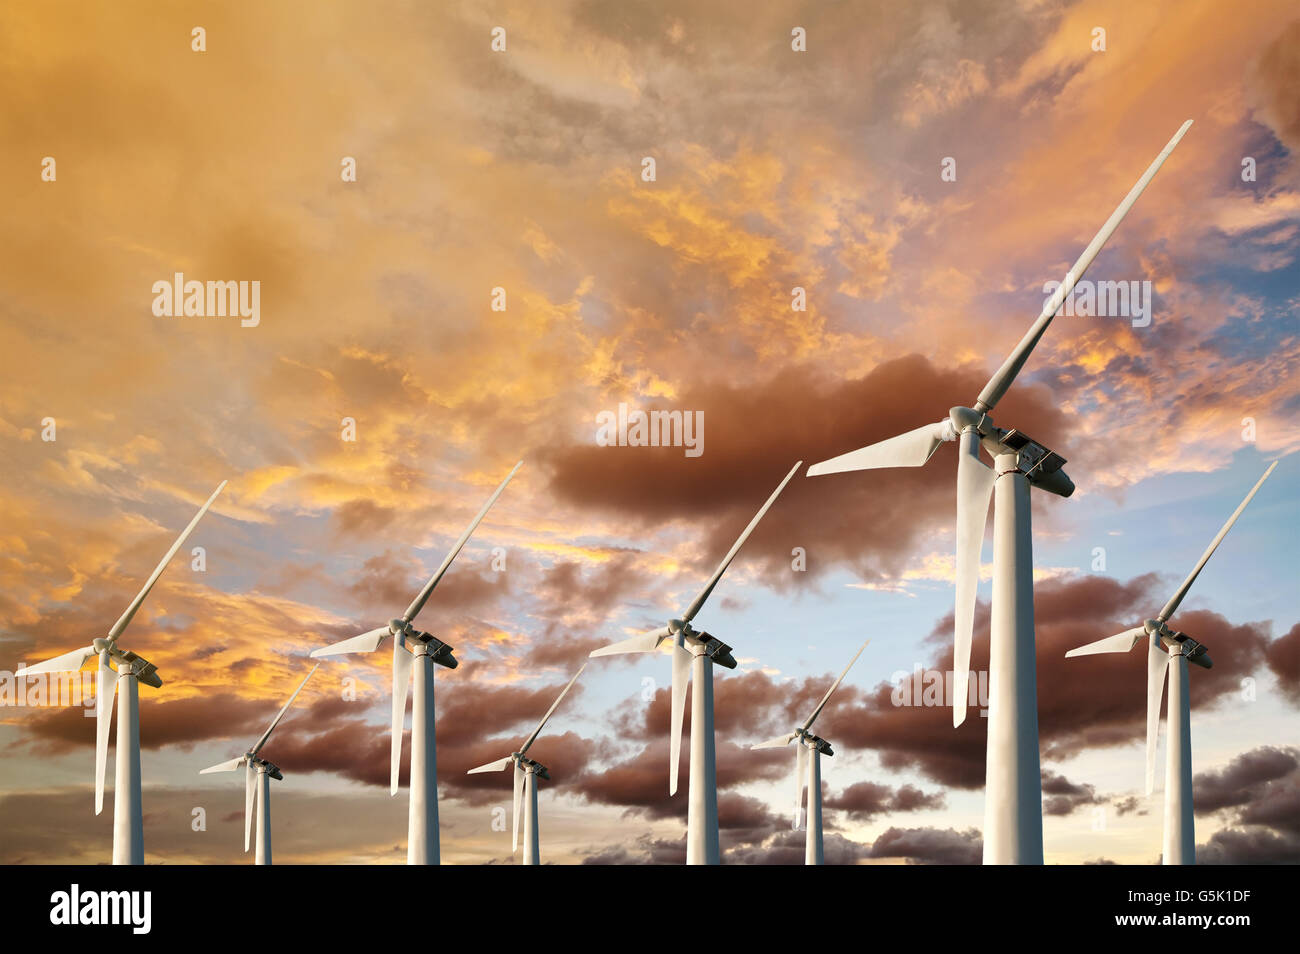 Wind Energy Blows Into Future Amarillo And Turbine Farms On Blue Sunset In Twilight Background - Stock Image